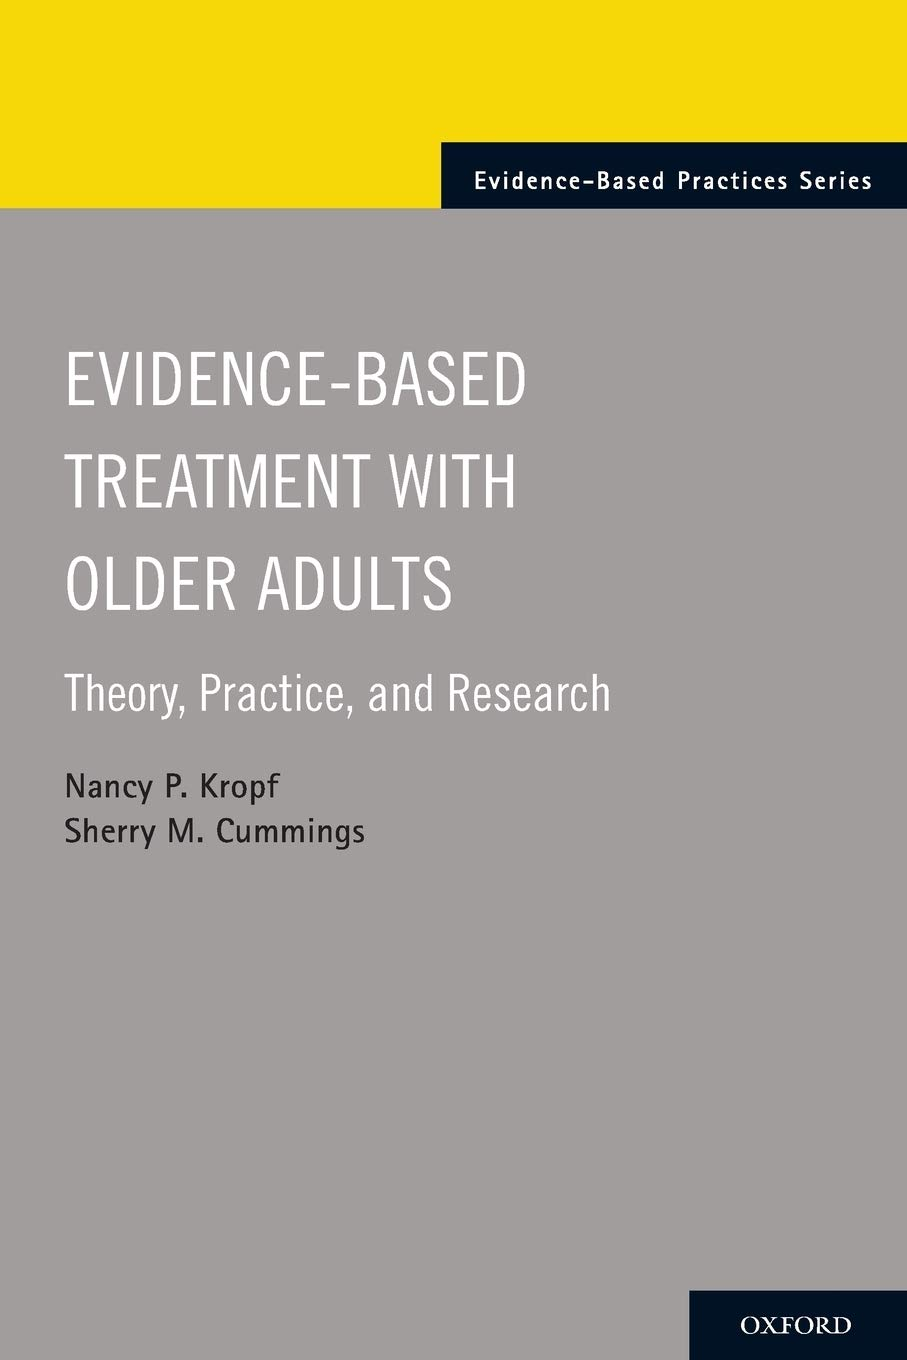 Evidence-Based Treatment with Older Adults: Theory, Practice, and Research (Evidence-Based Practices)